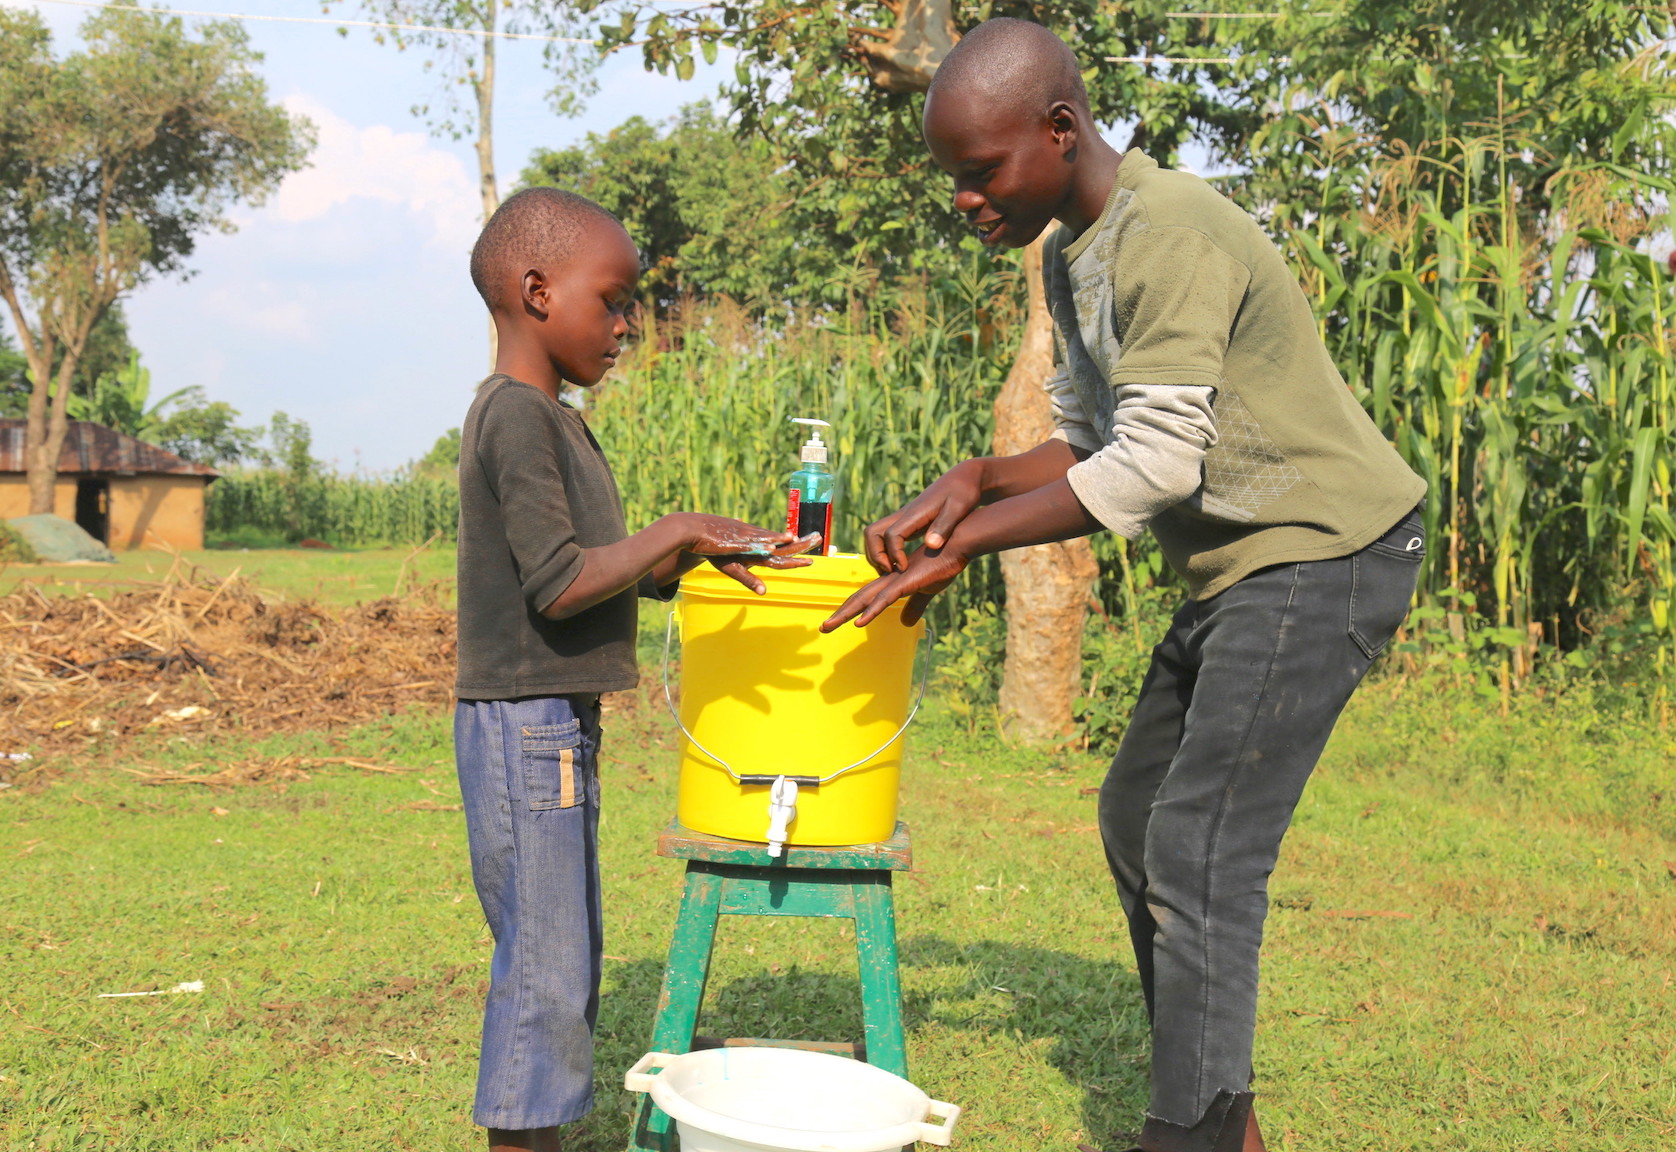 Raphael (right) teaches his brother how to effectively wash hands with soap to prevent COVID-19 and other disease. ©World Vision Photo/Irene Sinoya.